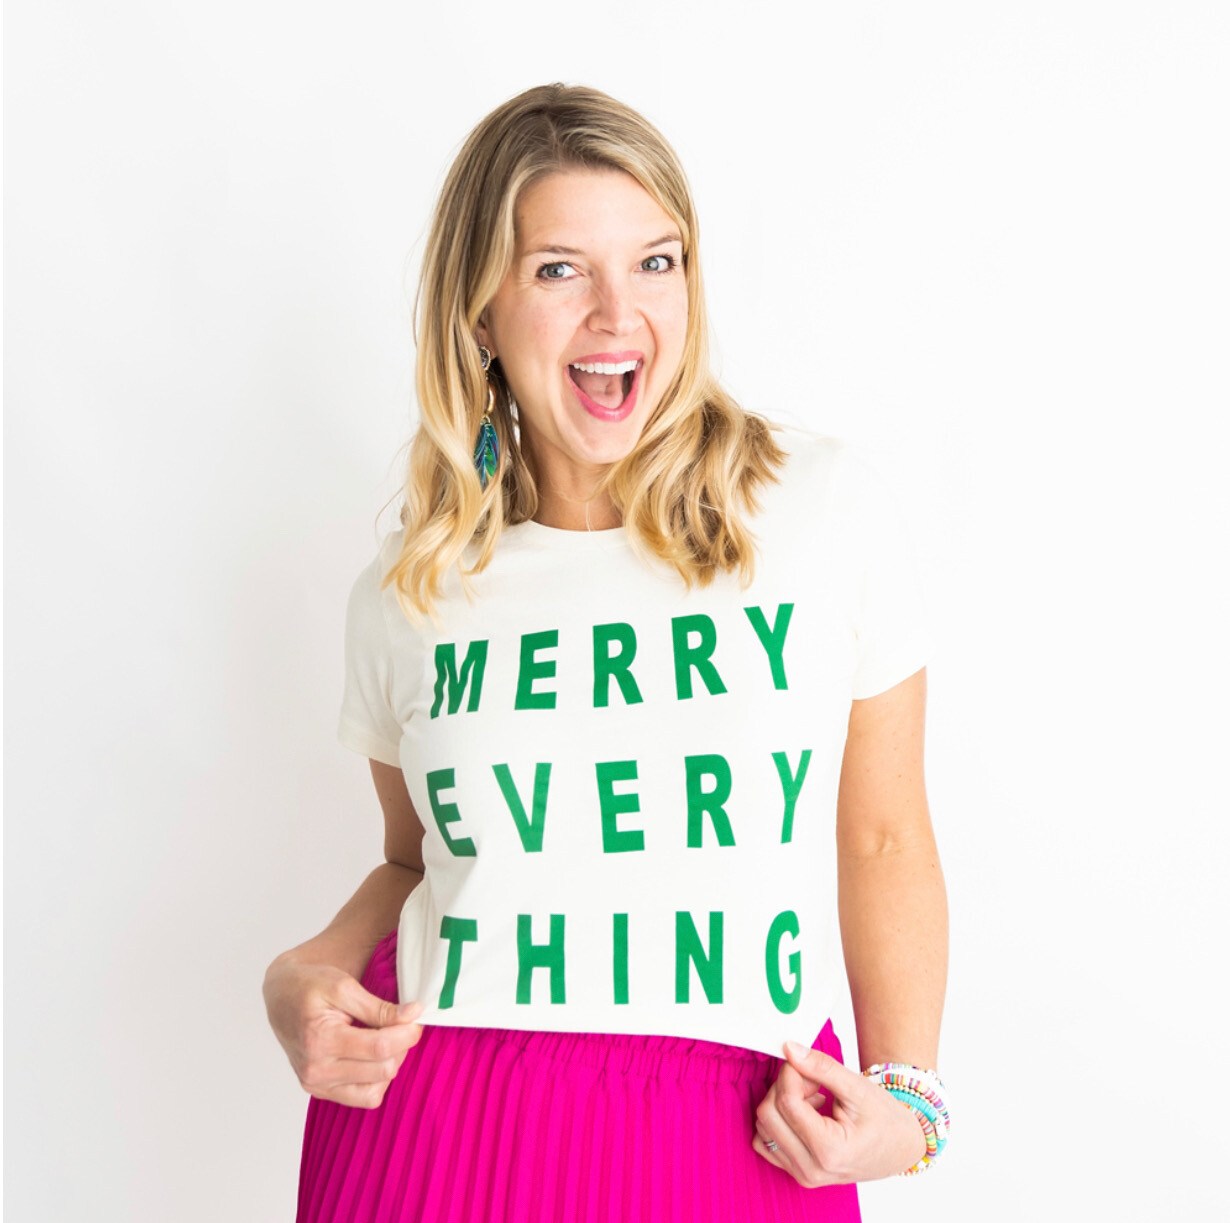 PREORDER Merry everything Tee!